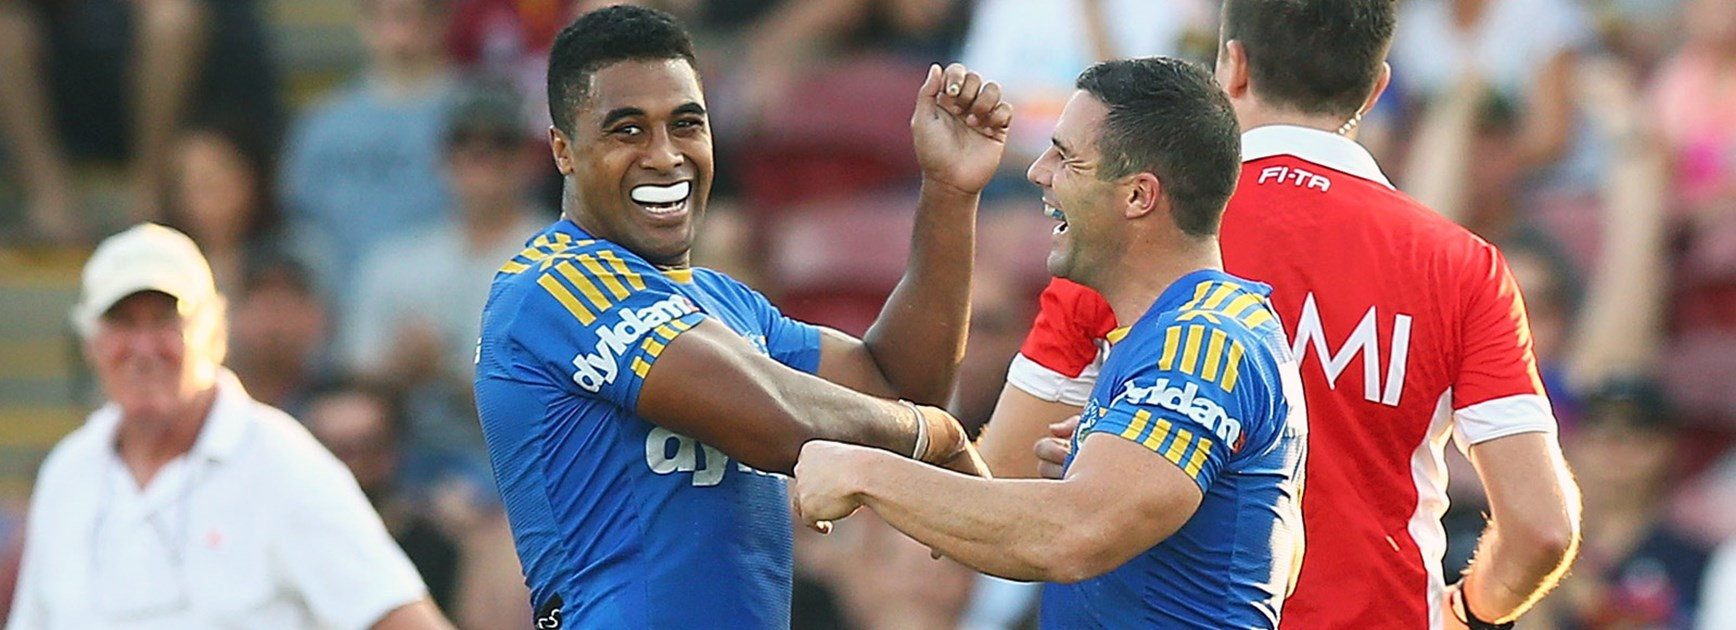 Michael Jennings and Michael Gordon celebrate during the Eels' Round 14 win over the Titans.